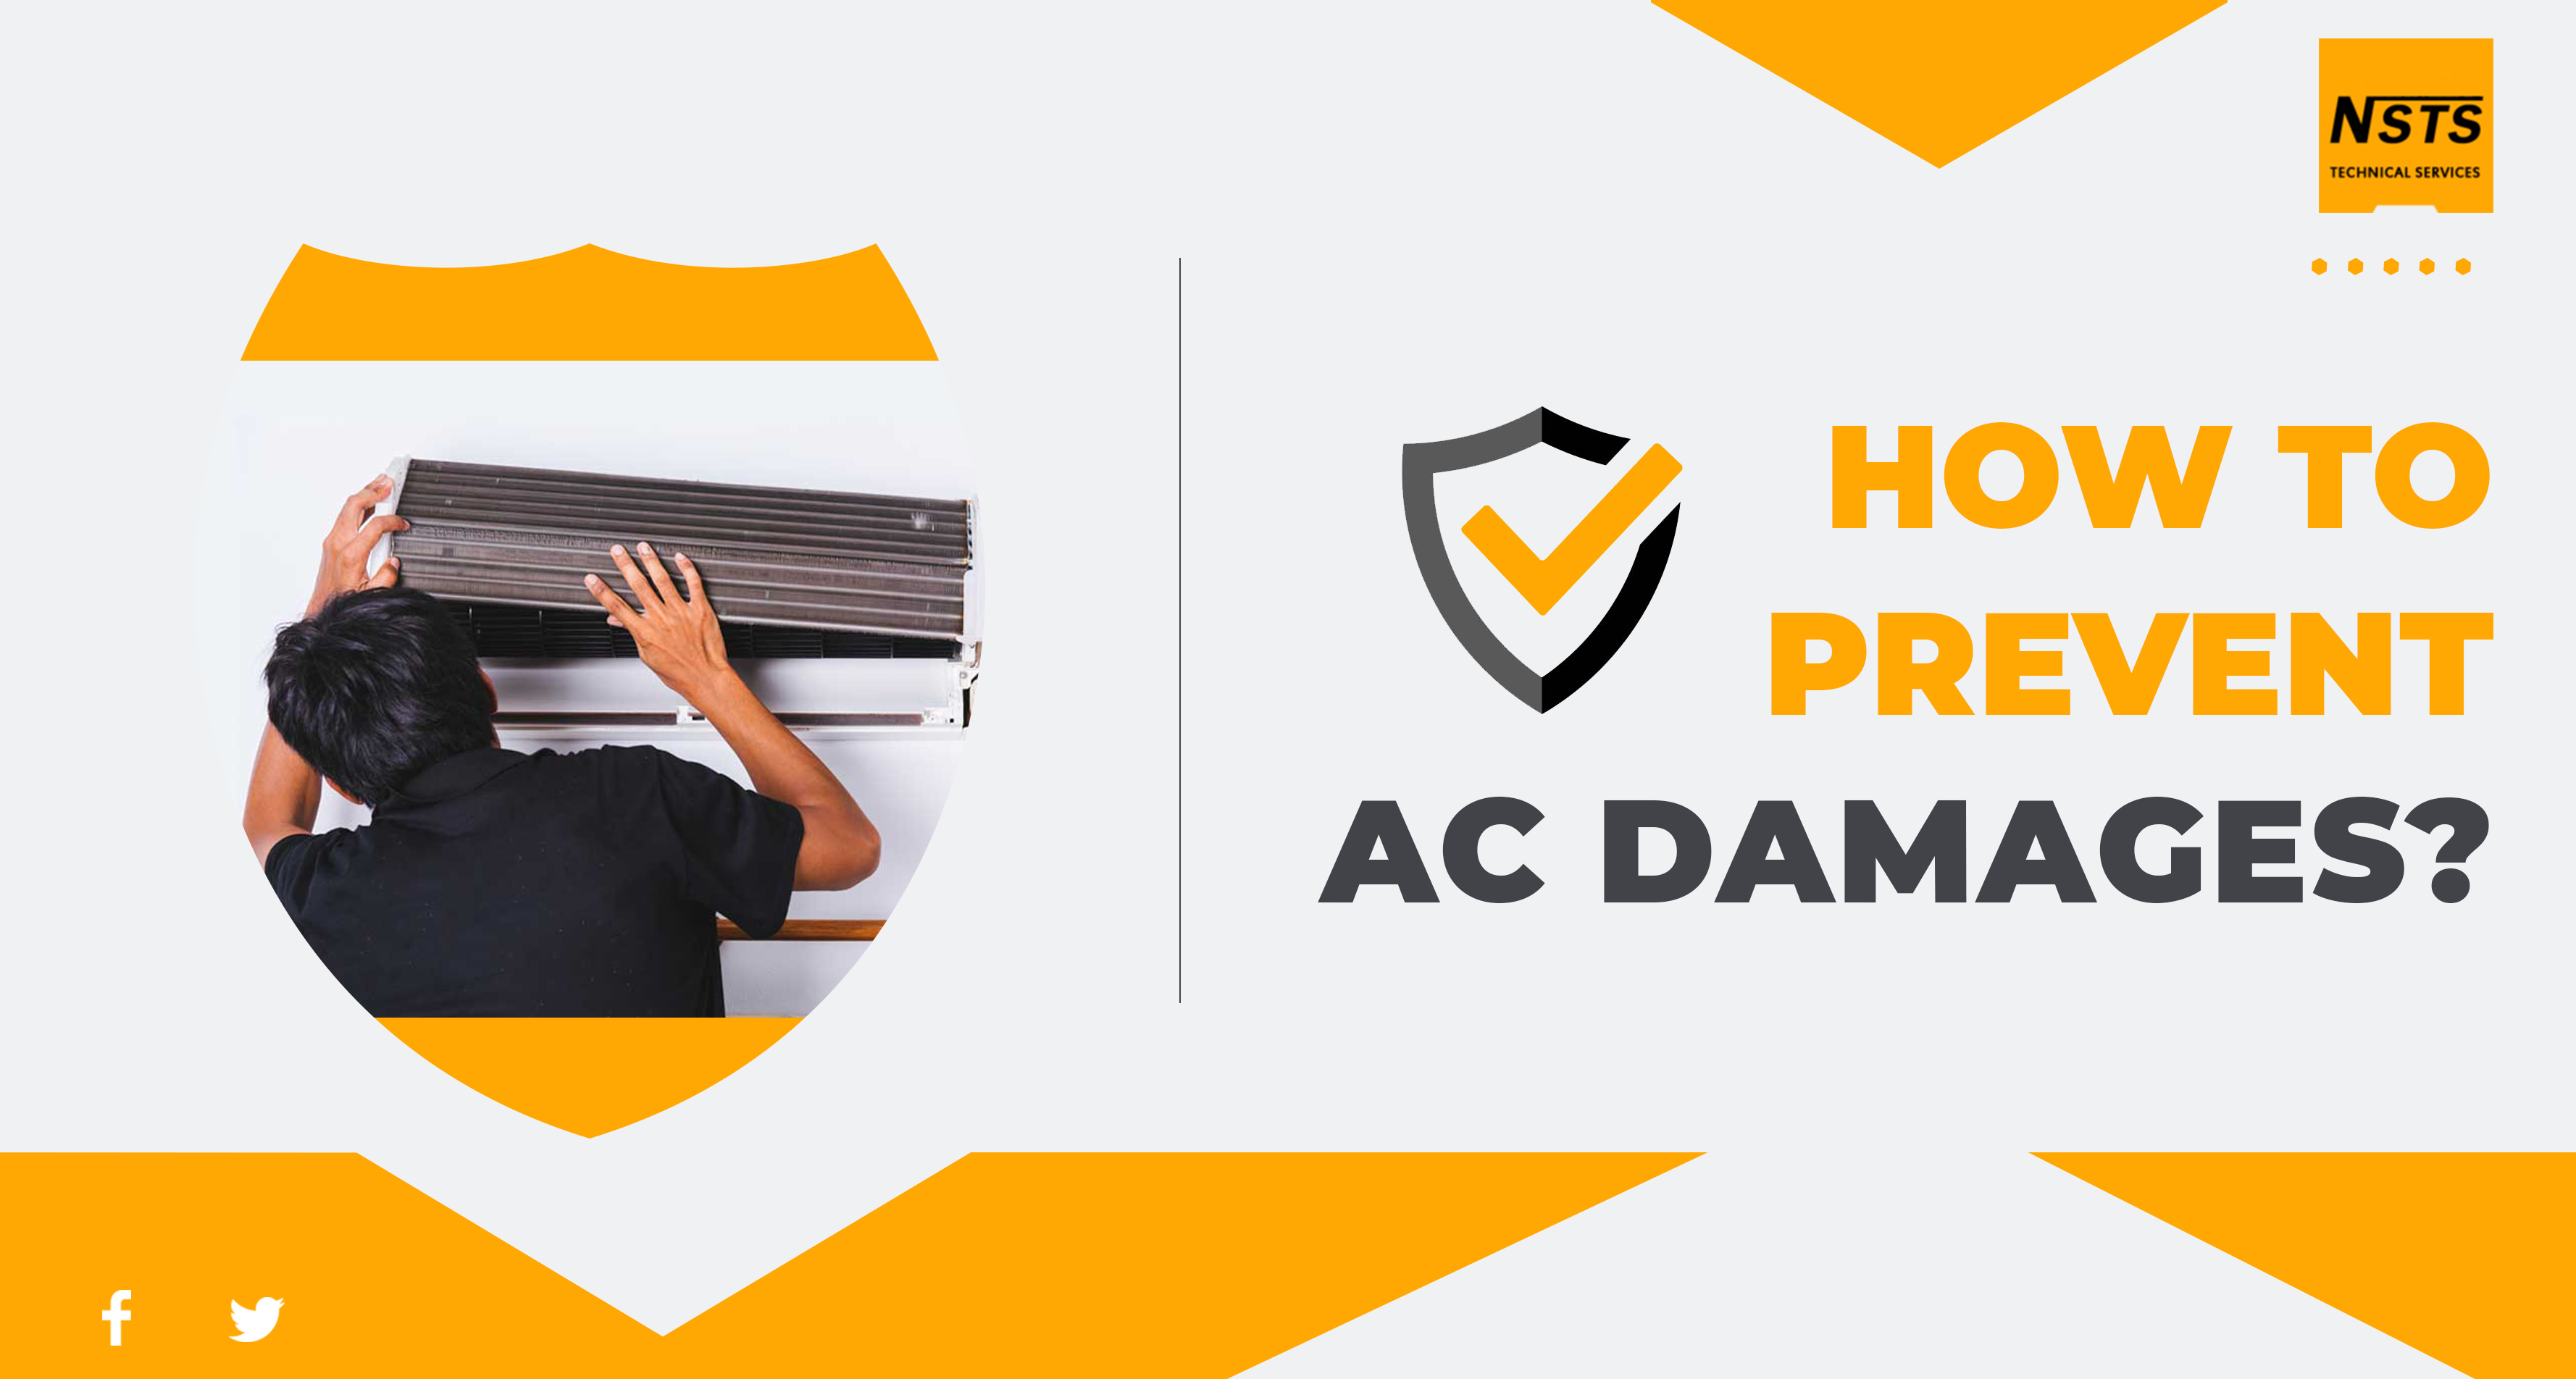 How to prevent AC damages?